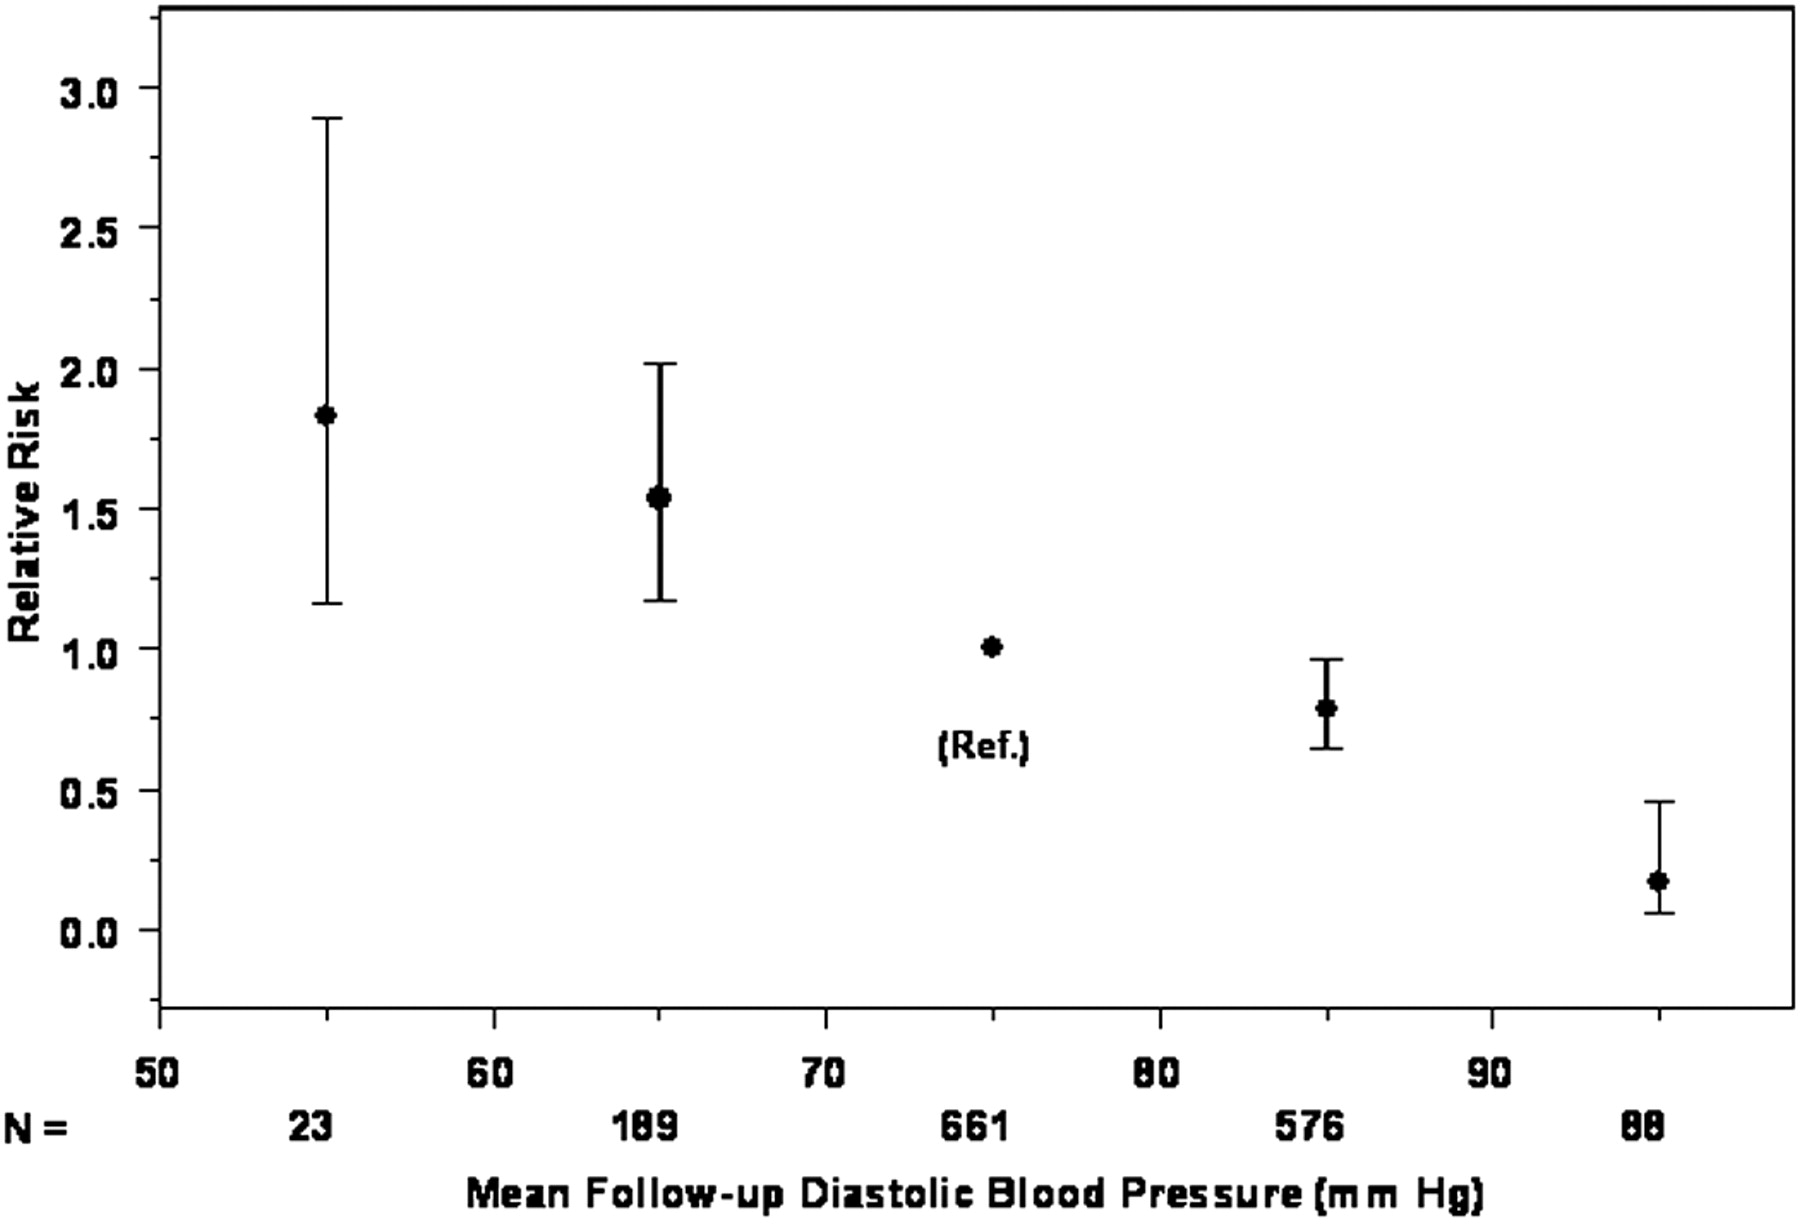 Impact of Achieved Blood Pressure on Cardiovascular Outcomes in the